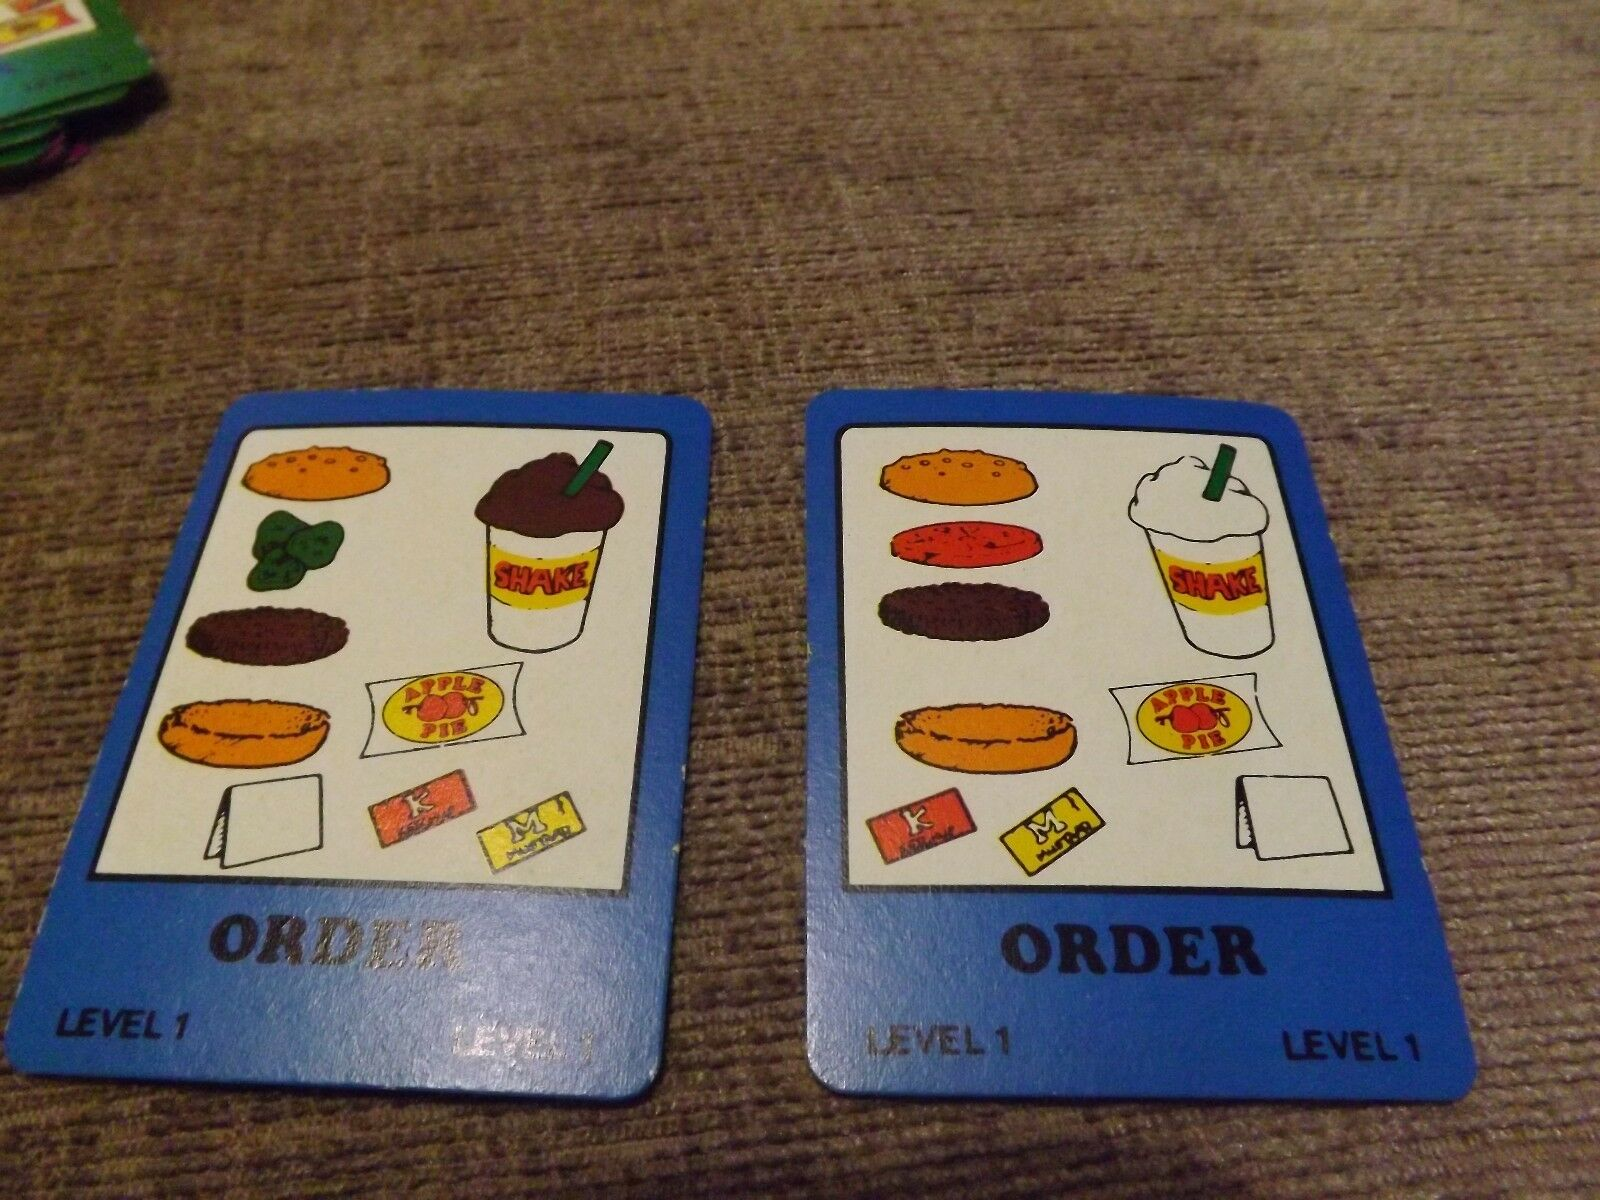 SPARES 1984 FOR VINTAGE 1984 SPARES BUILD A BETTER BURGER GAME ACTION GT Blau ORDER CARD 1 972bd0